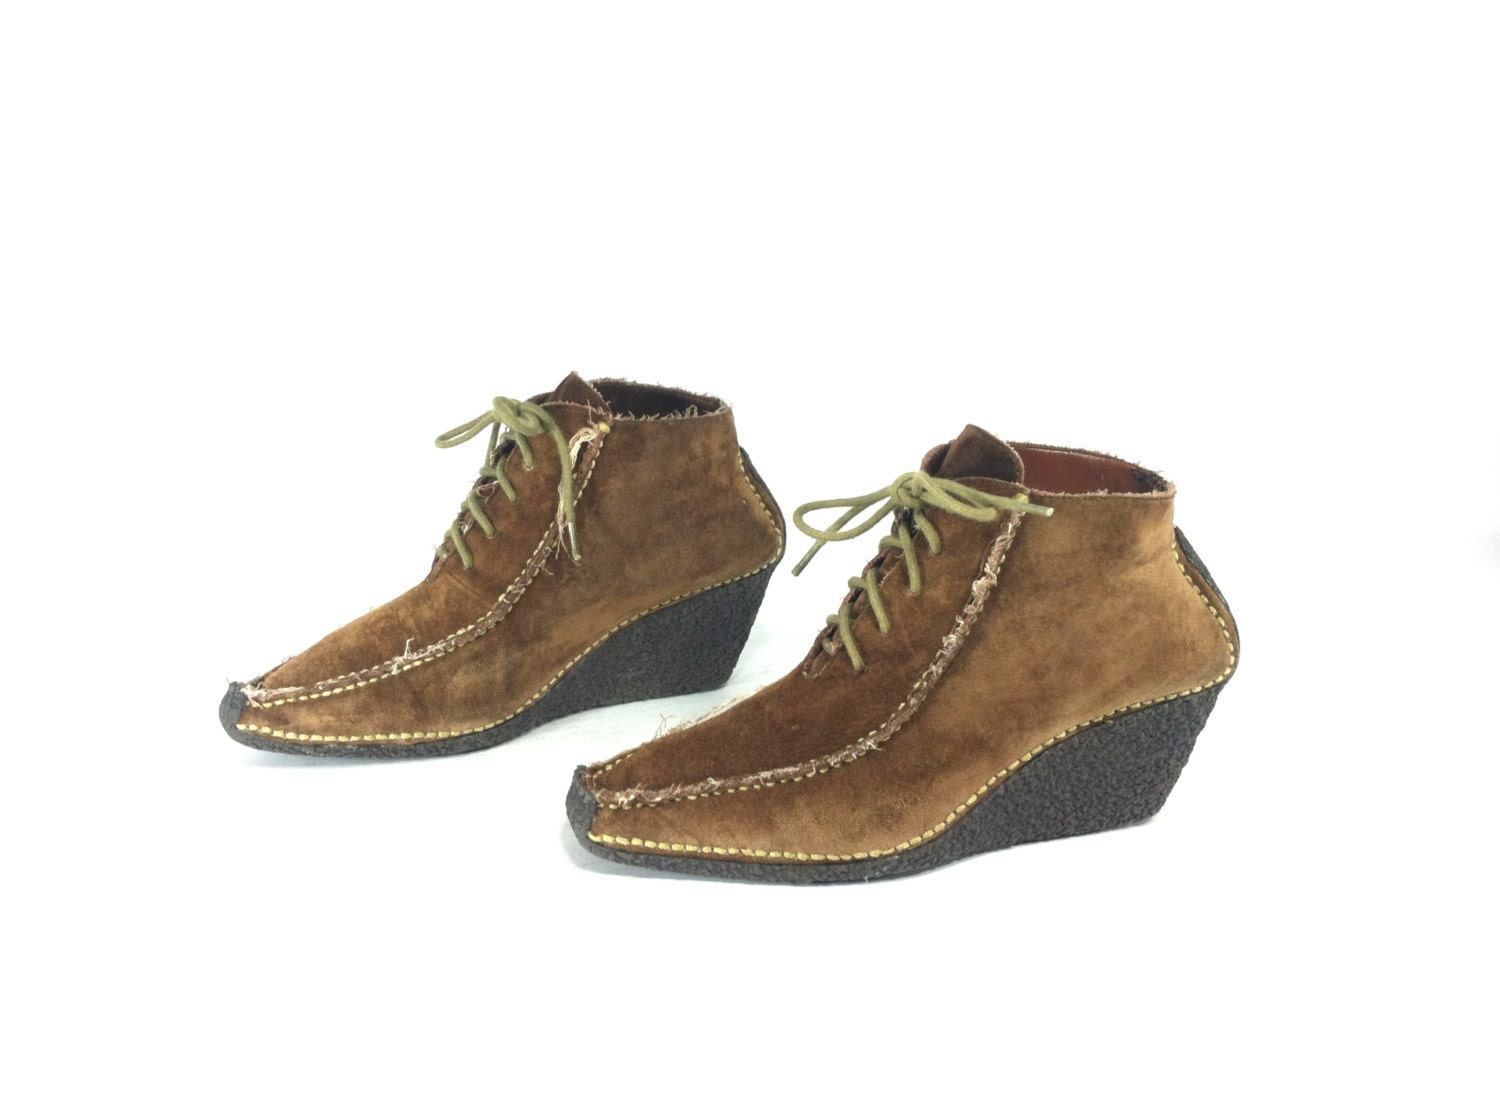 leather wedge ankle boots 8 brown lace up moccasin boots 8